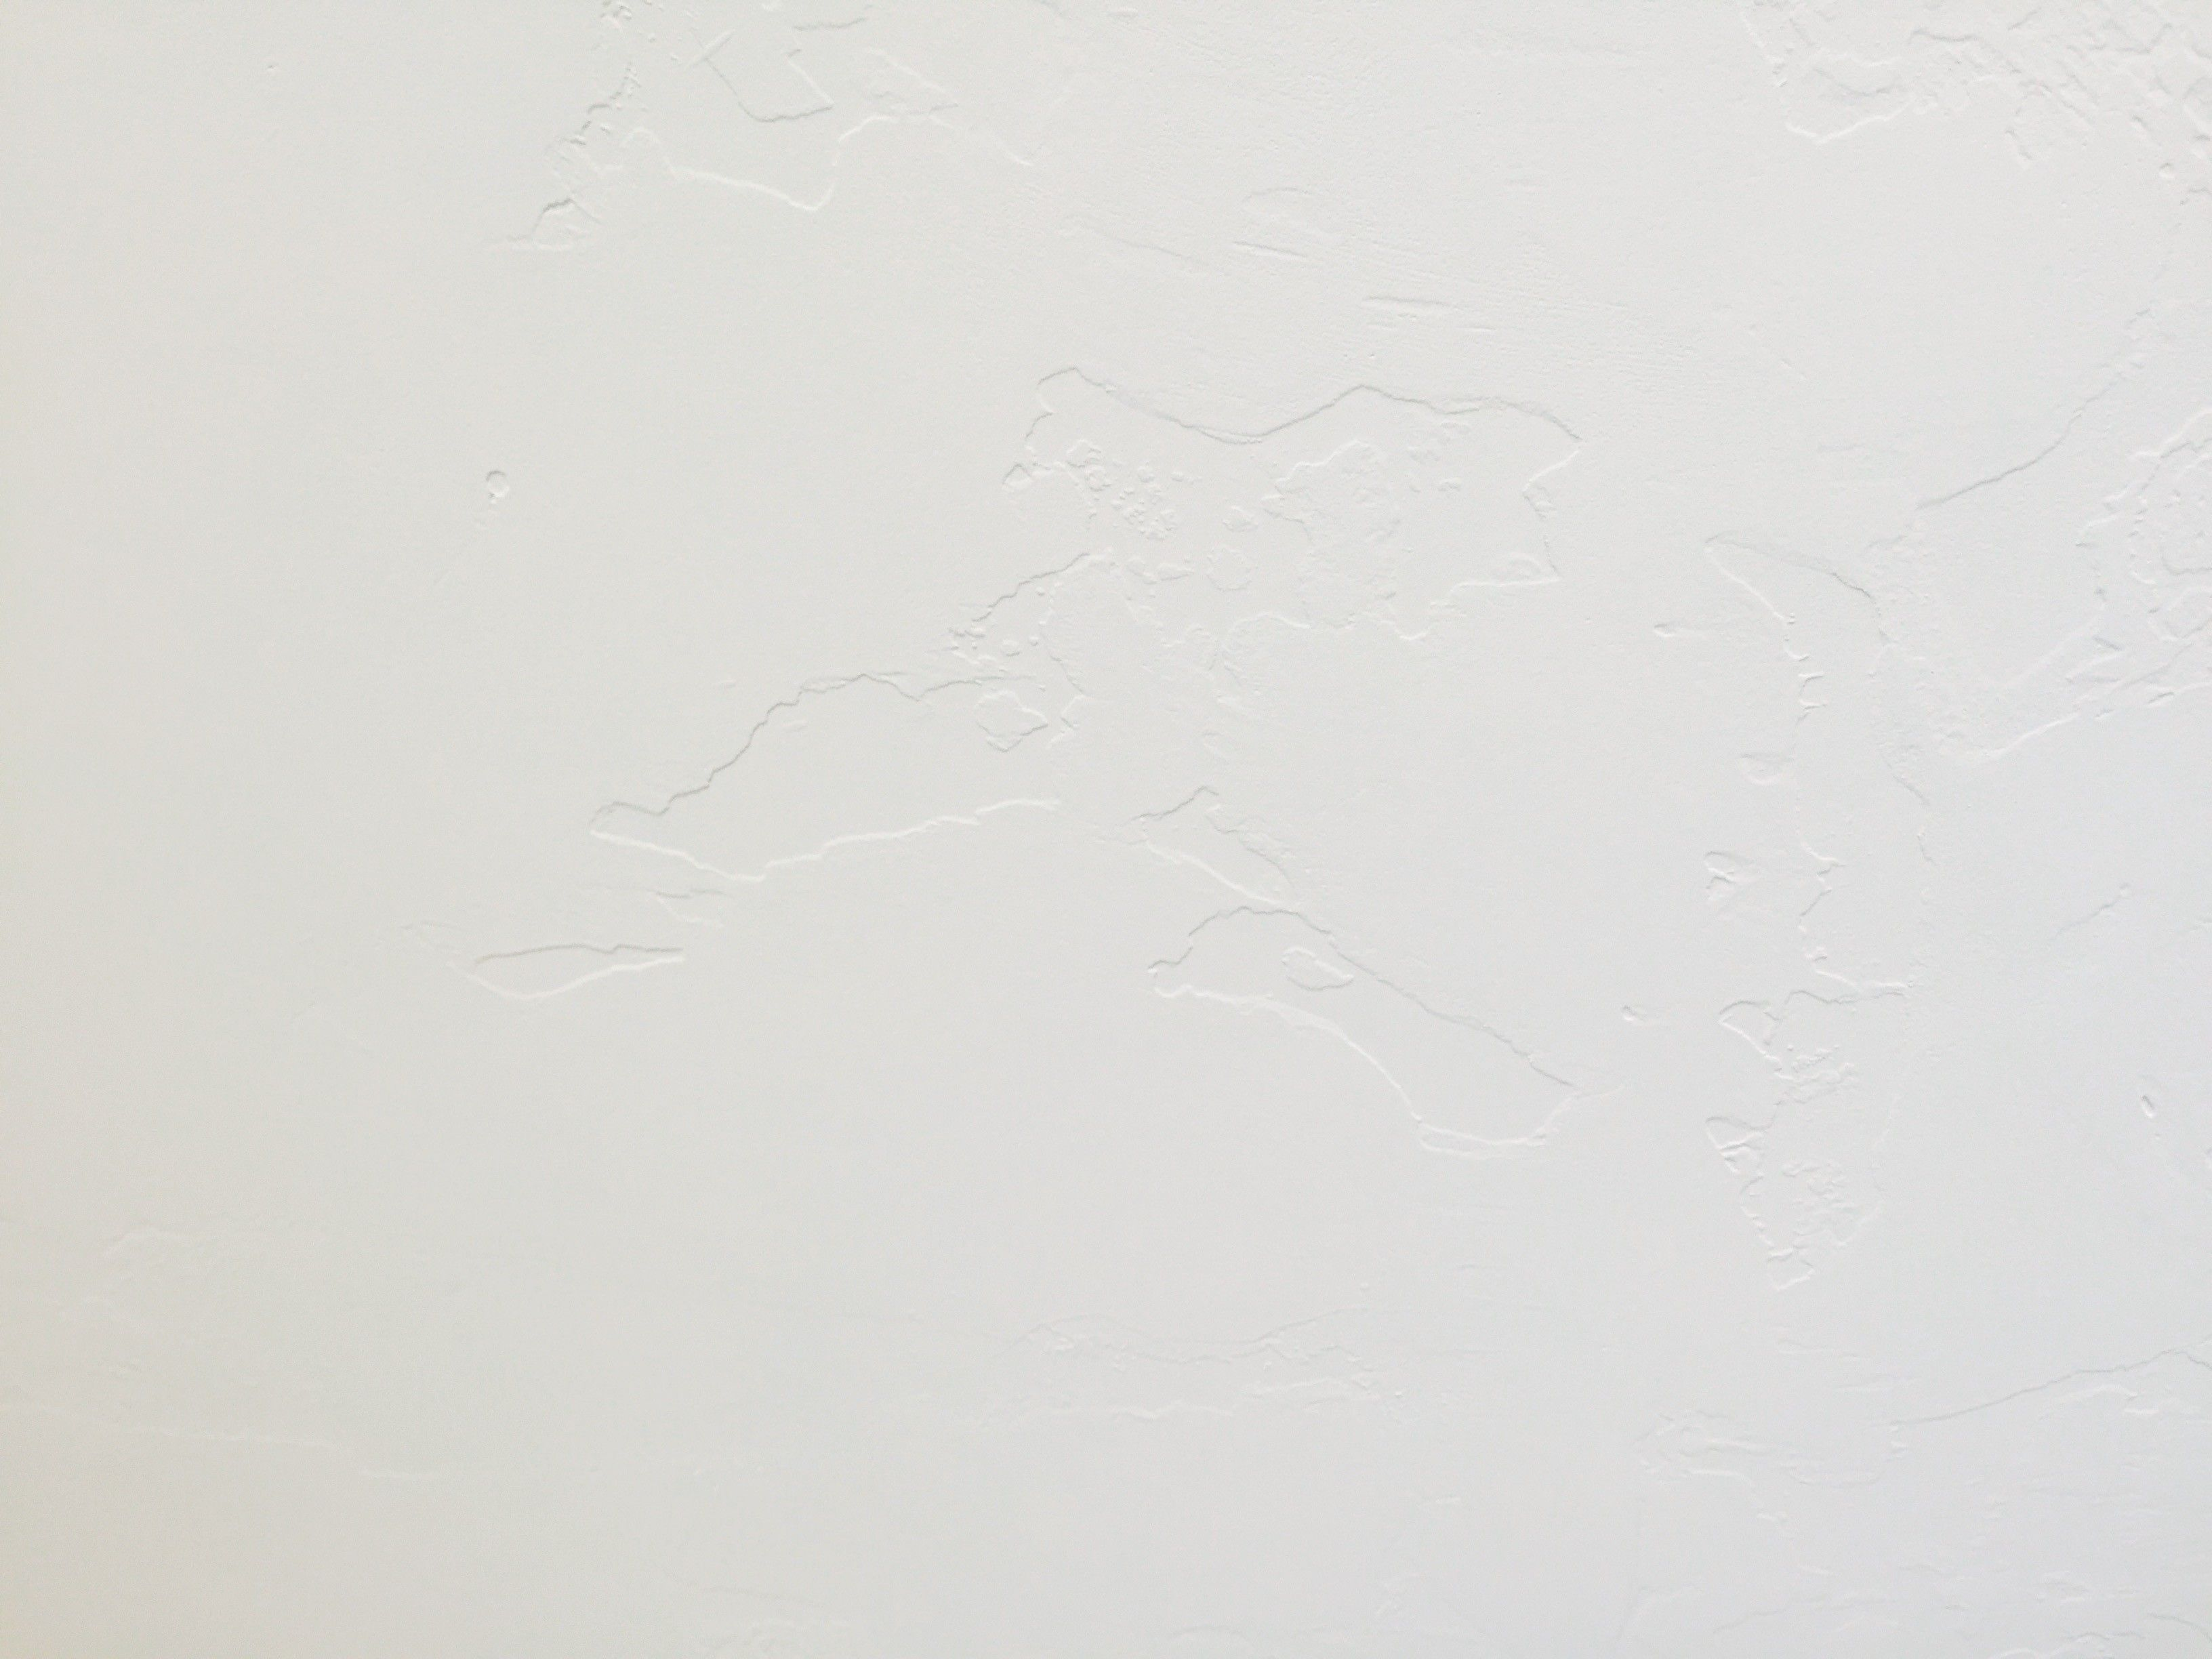 Wall textures - Imperfect Smooth | Style/Design | Pinterest | Wall ...